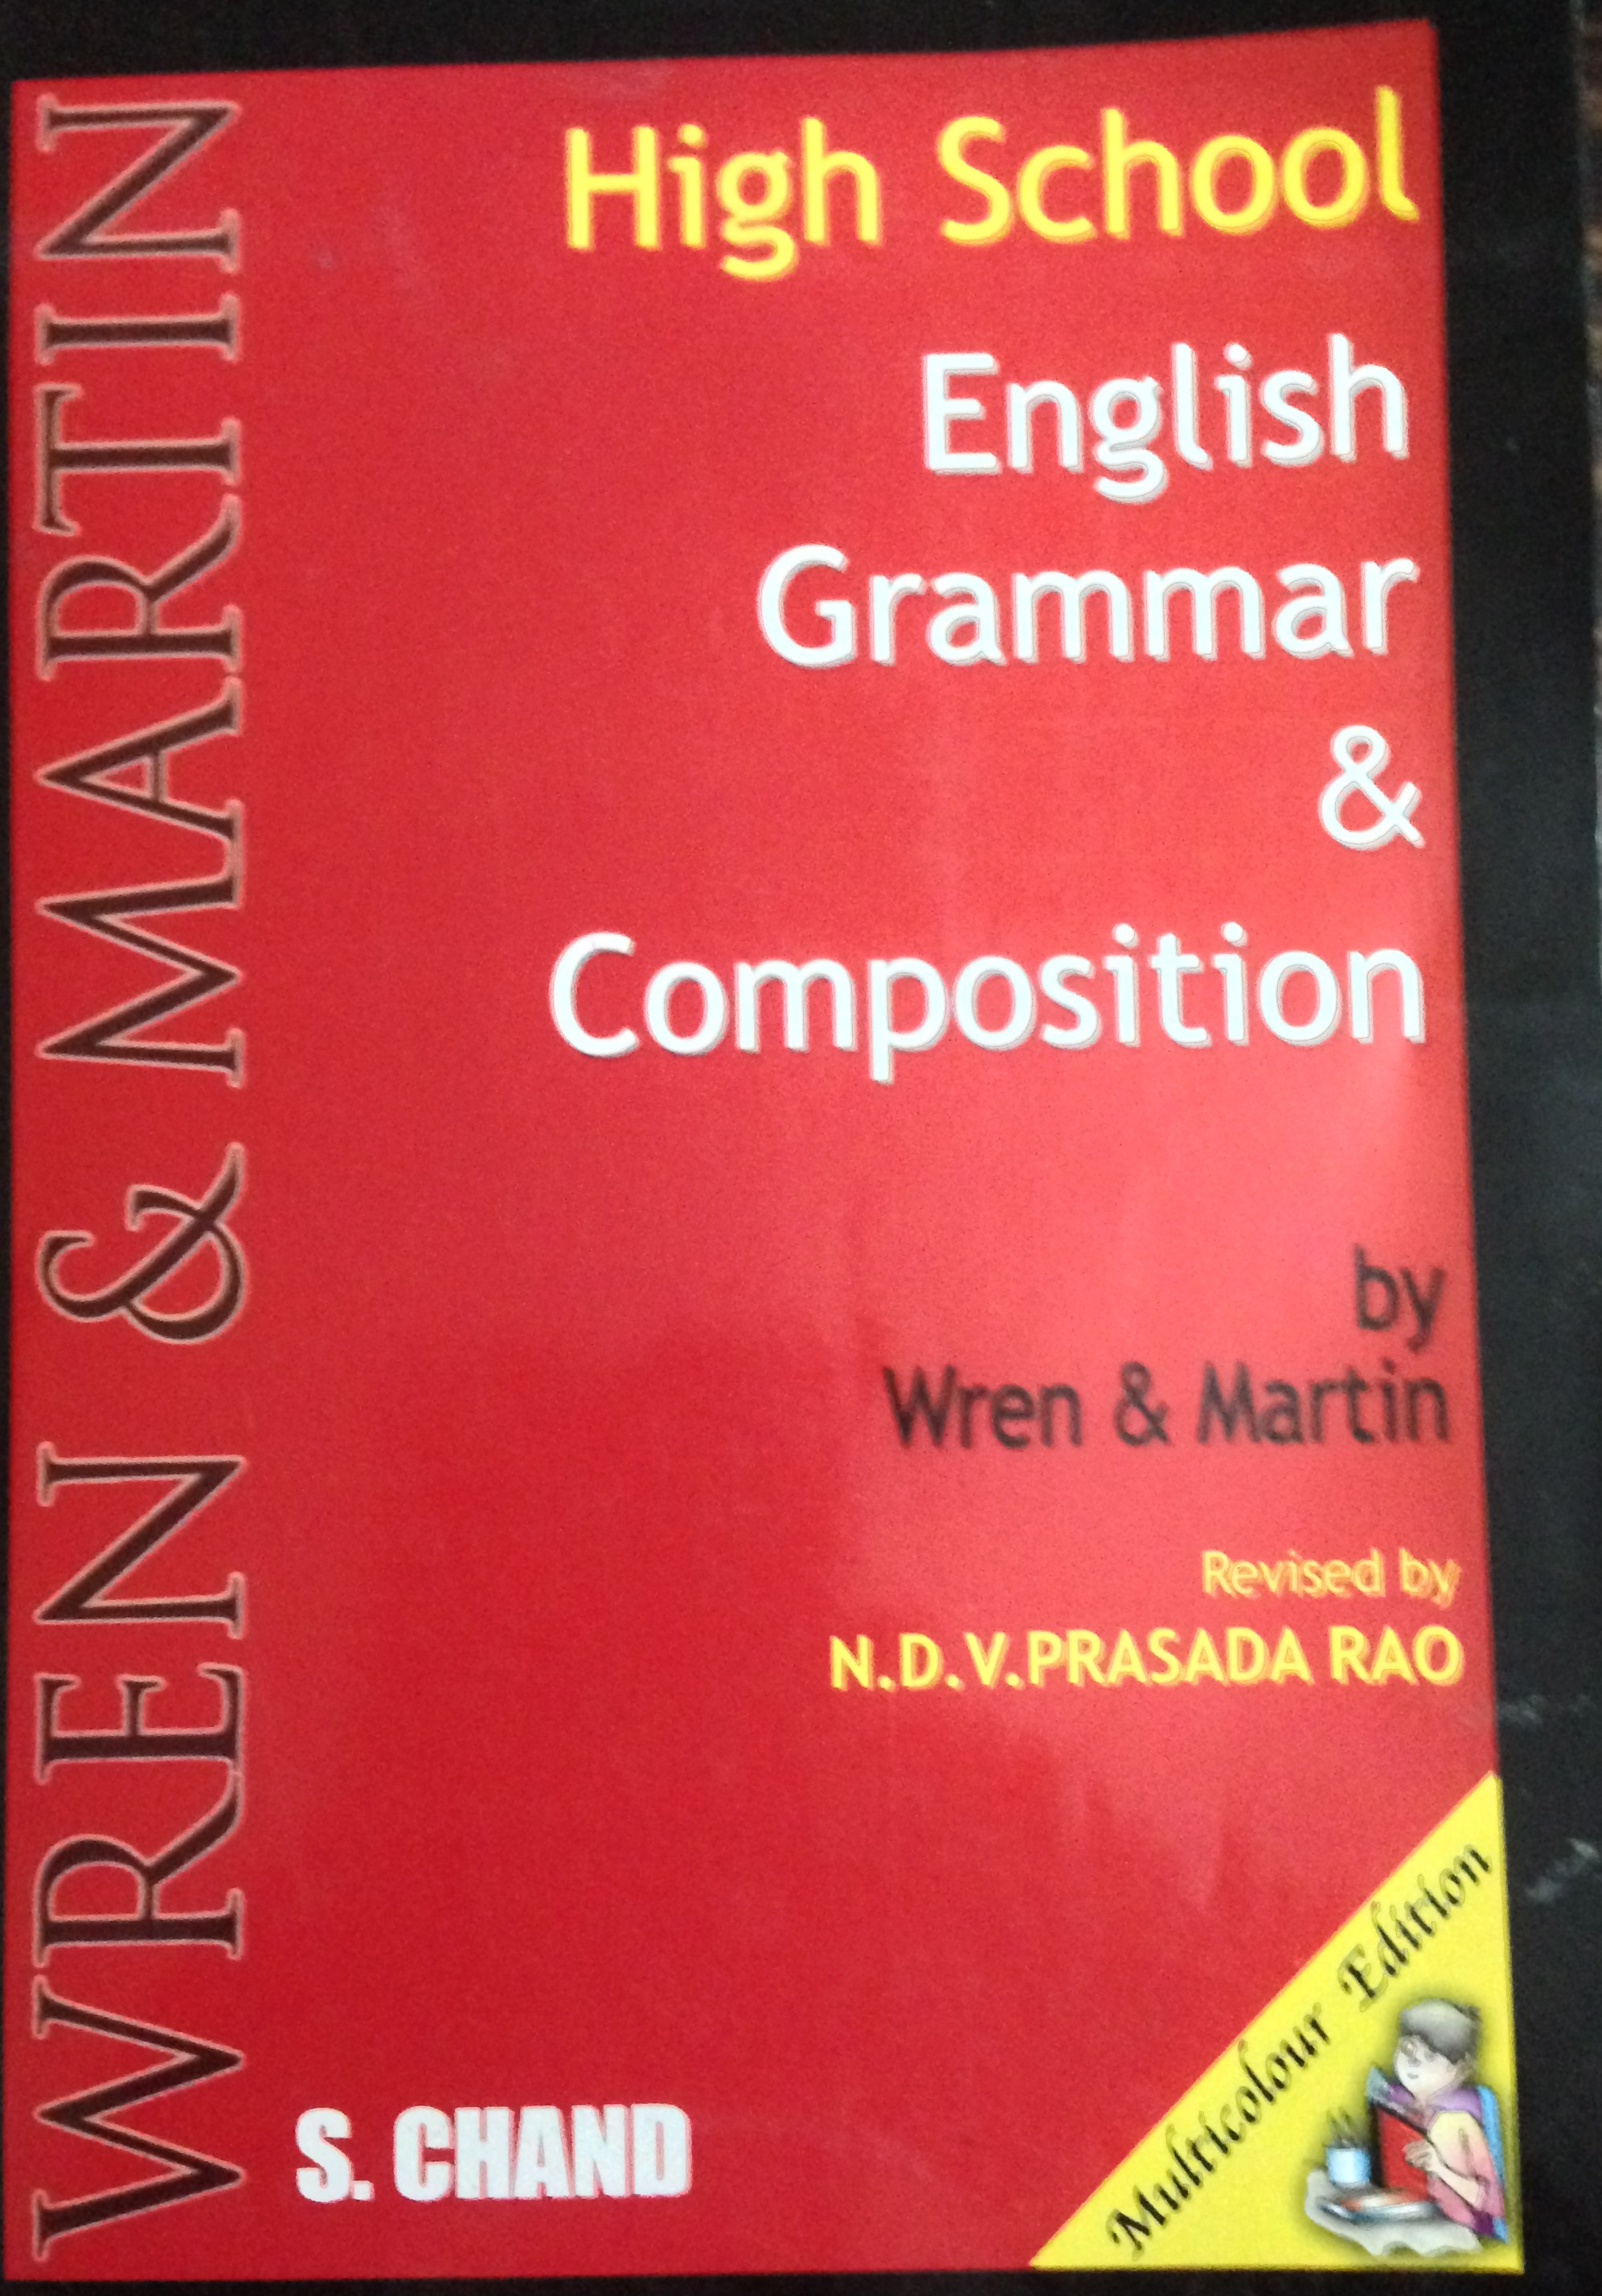 Preposition In Learn In Marathi All Complate: Download High School English Grammar Composition Ebook